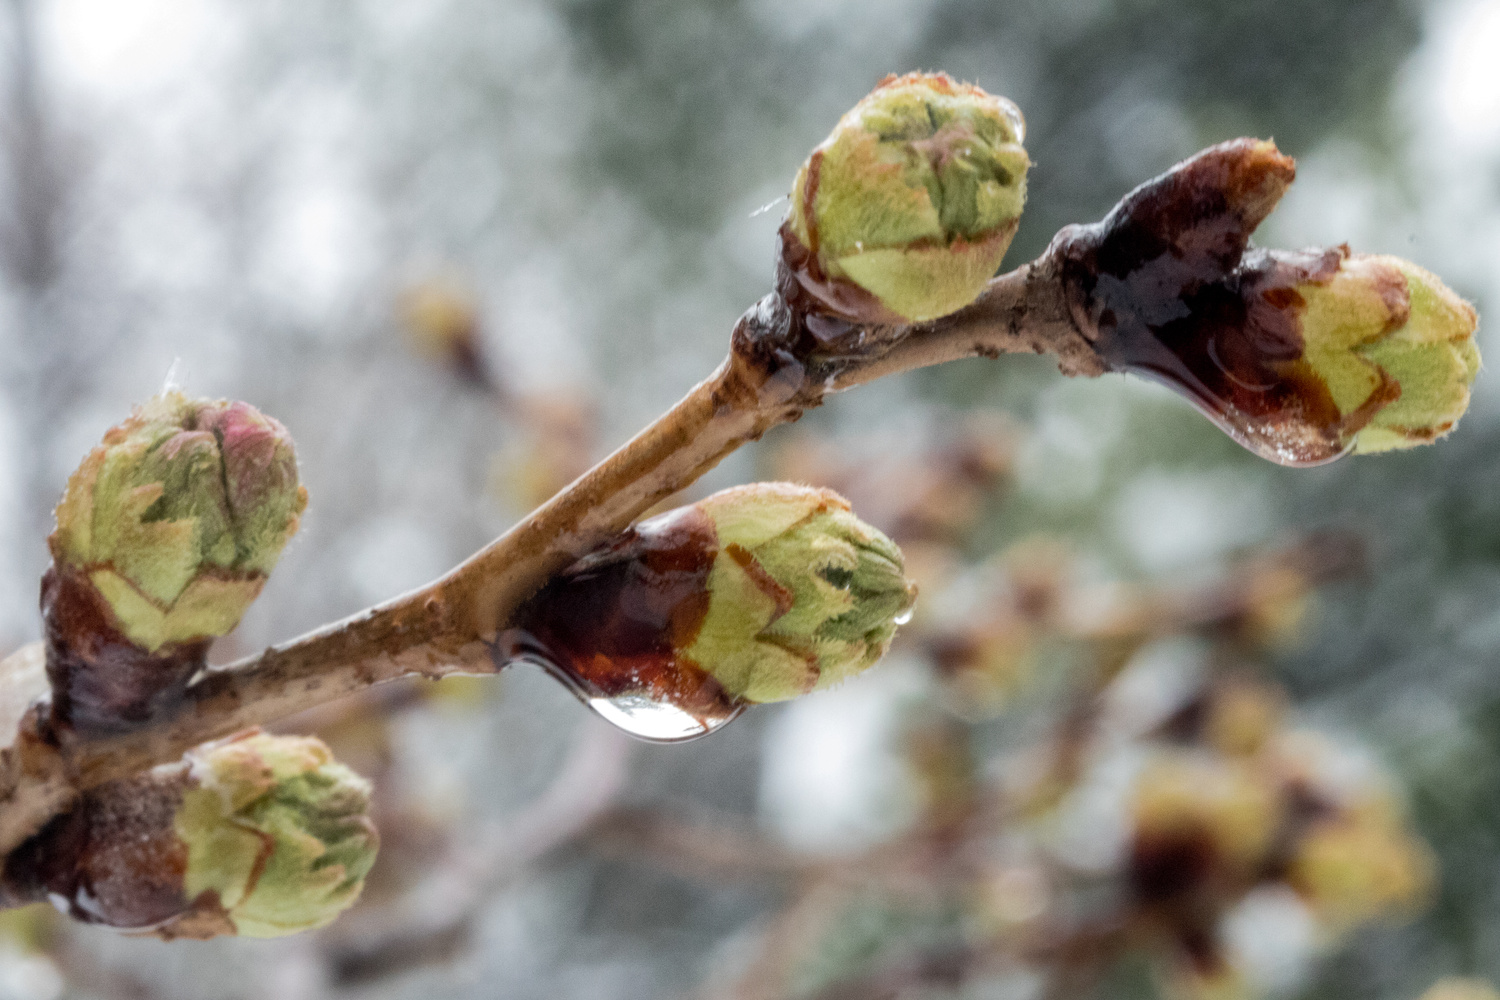 Cherry Blossom buds in the snow. by Paul FIlios